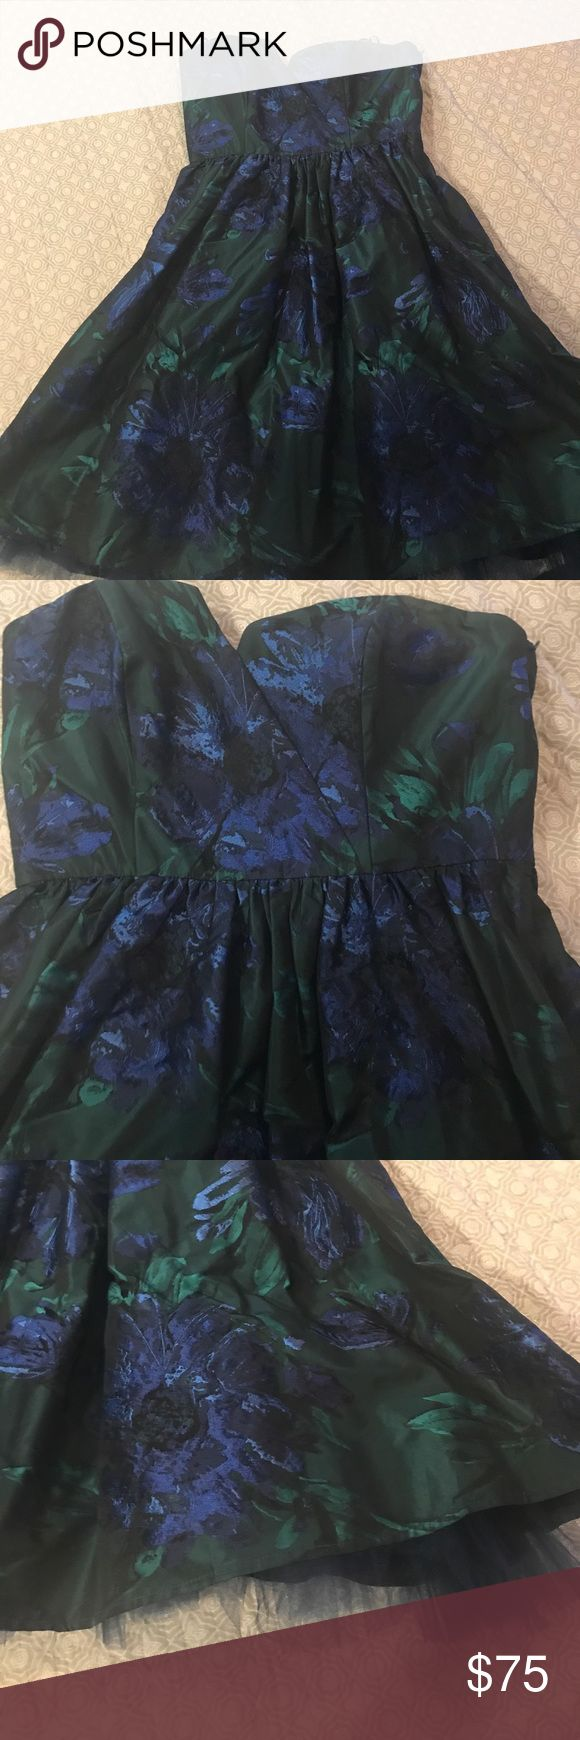 ABS by Alan Schwartz strapless party dress Strapless dress. Green and blue floral jacquard print. Tulle underlay adds slight volume to the skirt ABS Allen Schwartz Dresses Strapless